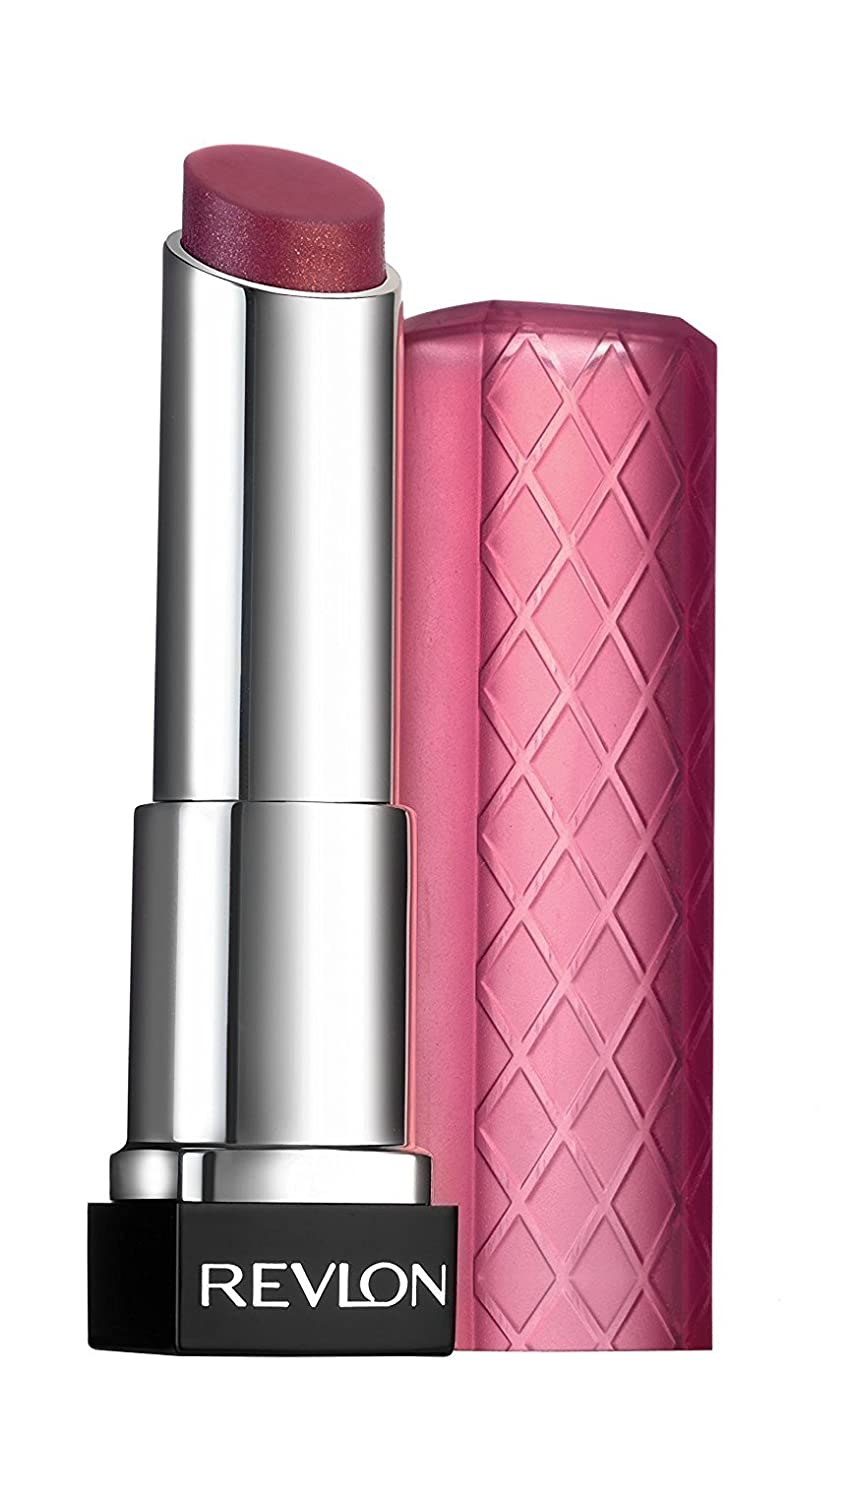 Revlon Colorburst Lip Butter, Berry Smoothie, 0.09 Ounce + FREE Curad Bandages 8 Ct.